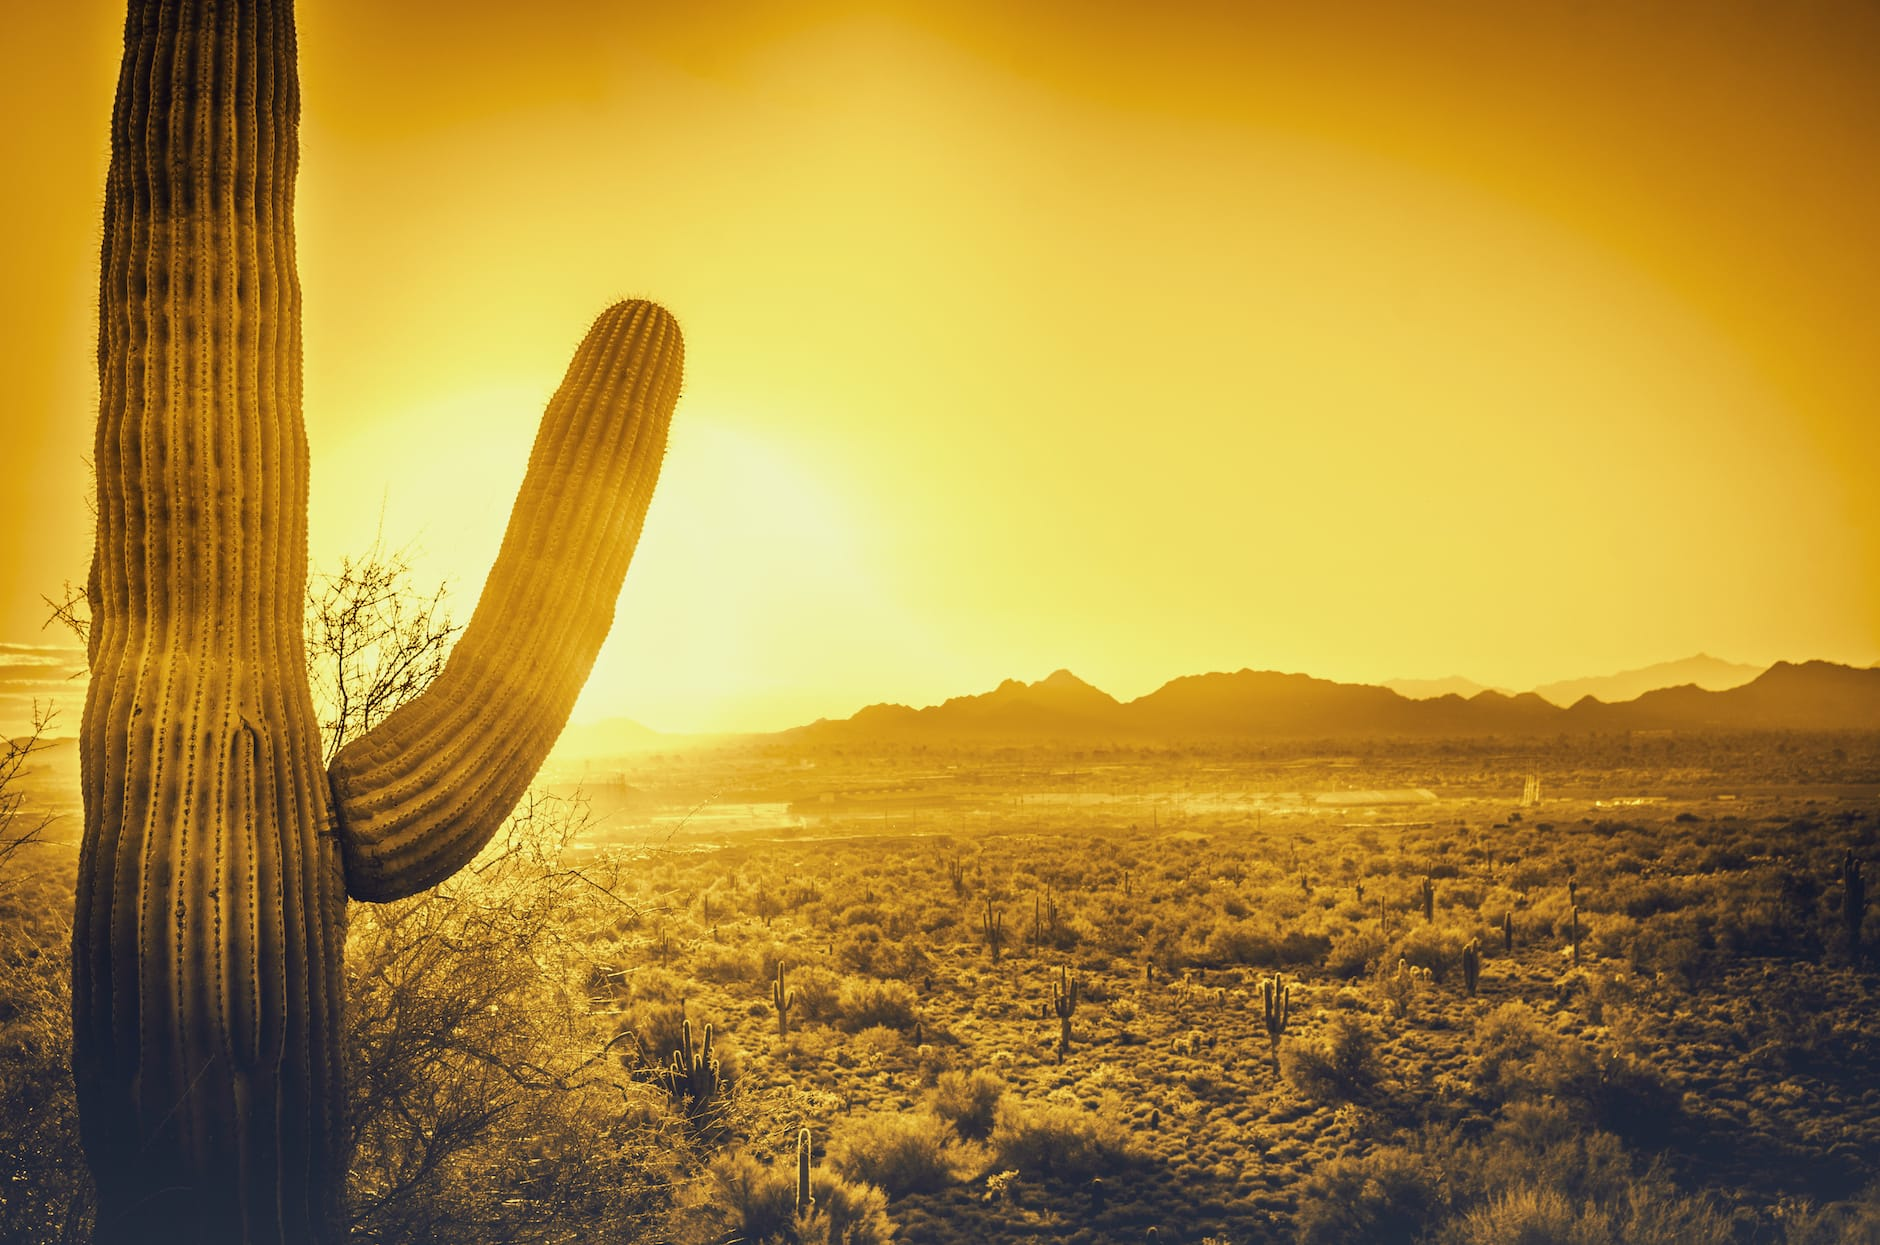 cactus with sun in background giving a yellow hue of scene